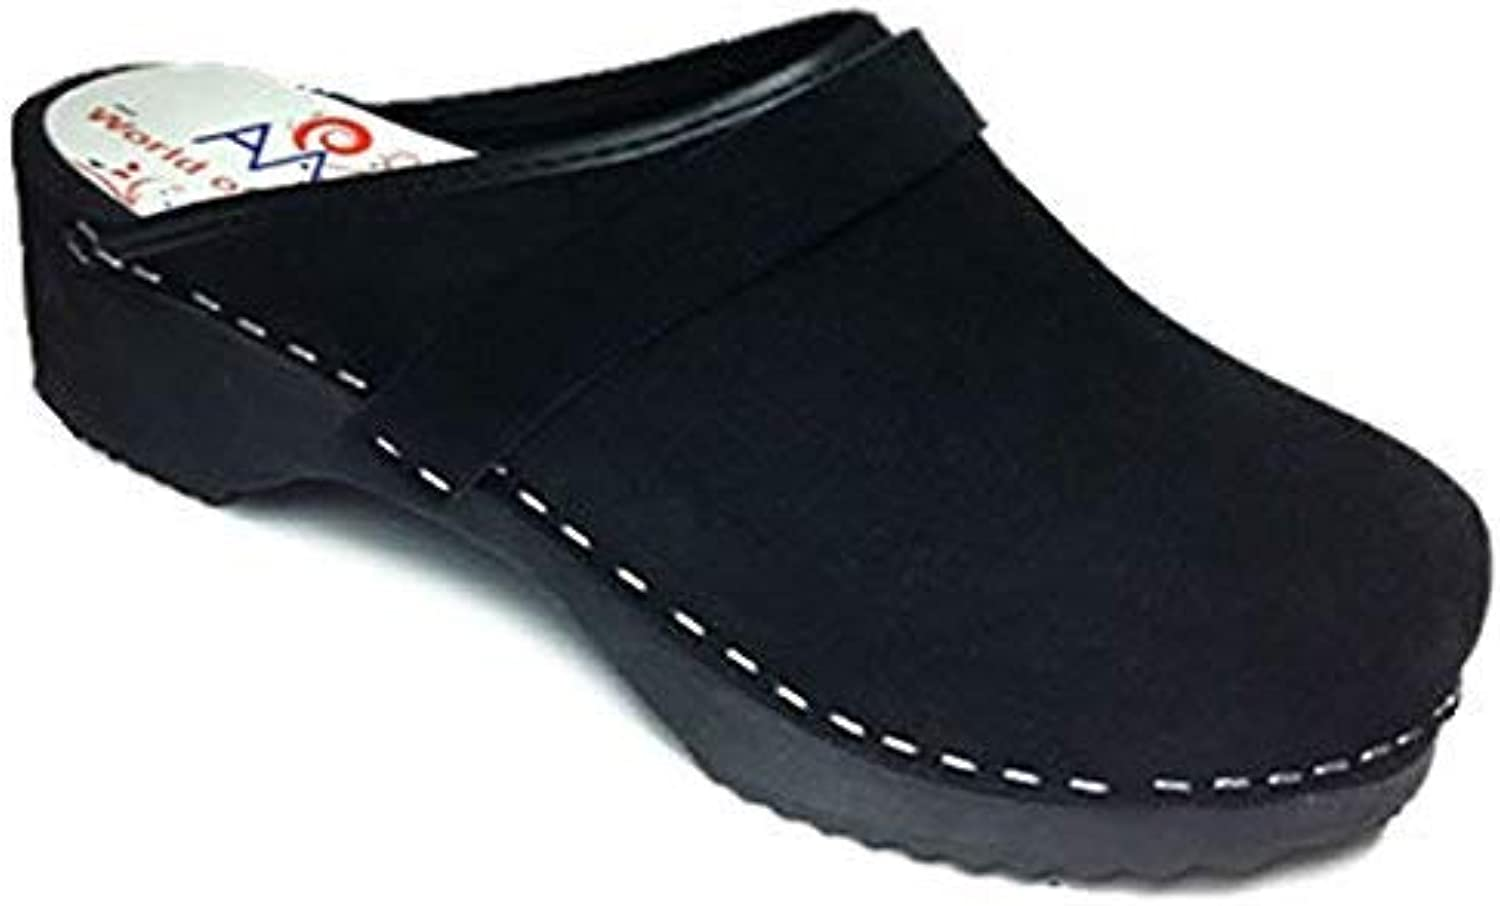 AM-Toffeln 100 Wooden and Black Suede Leather Clogs